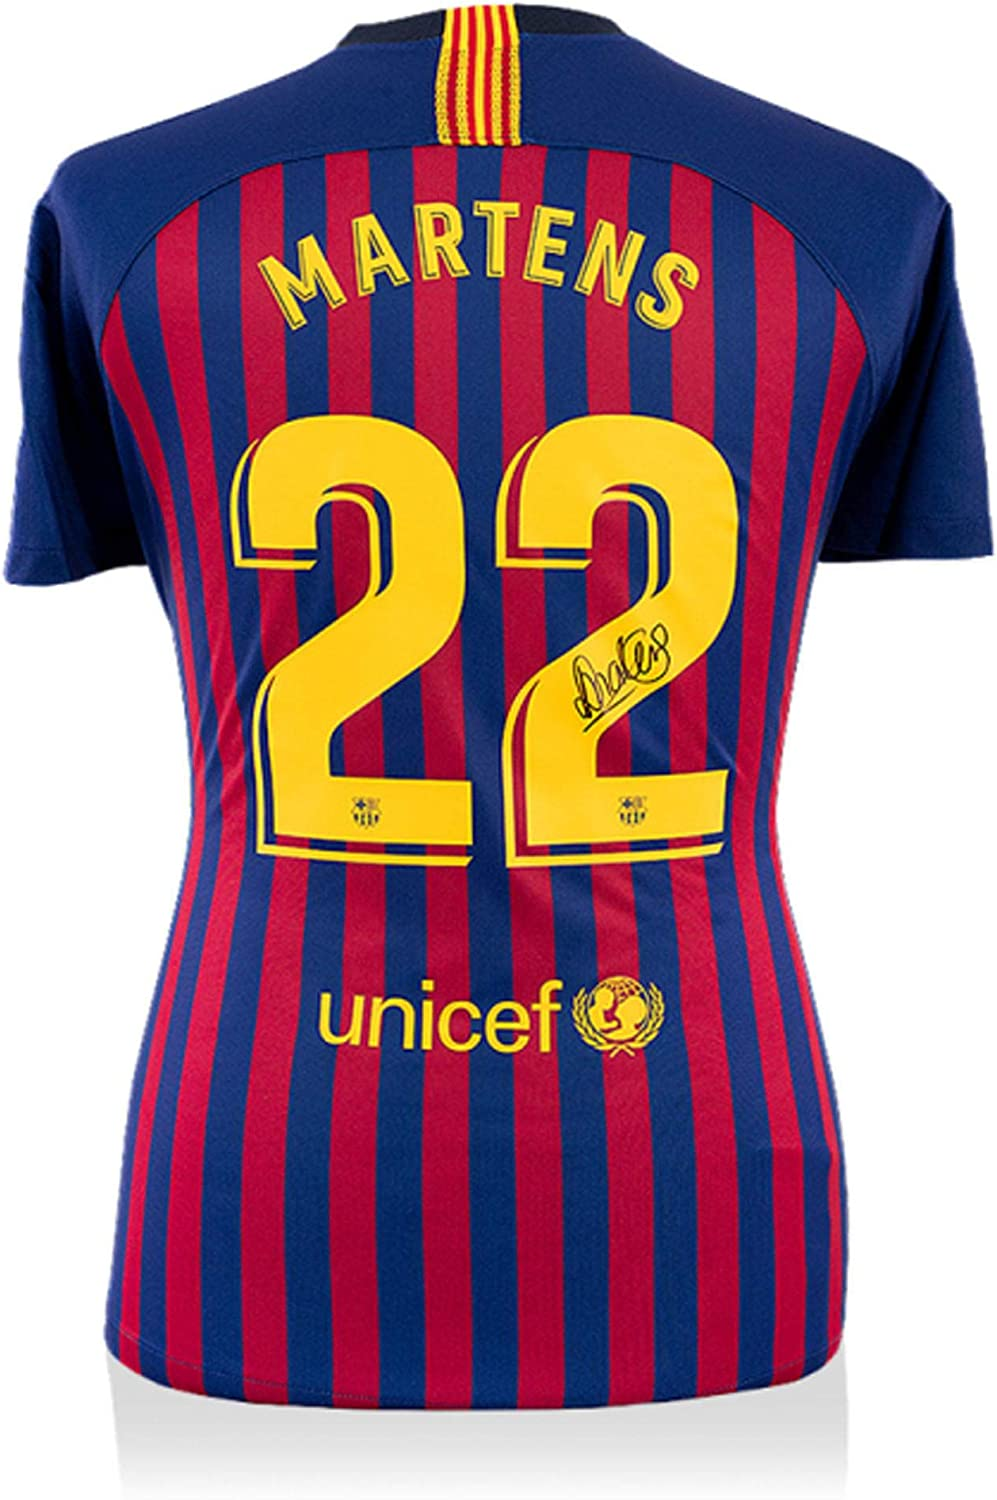 Lieke Martens Fc Barcelona Autographed 2018 2019 Home Jersey Icons Autographed Soccer Jerseys At Amazon S Sports Collectibles Store